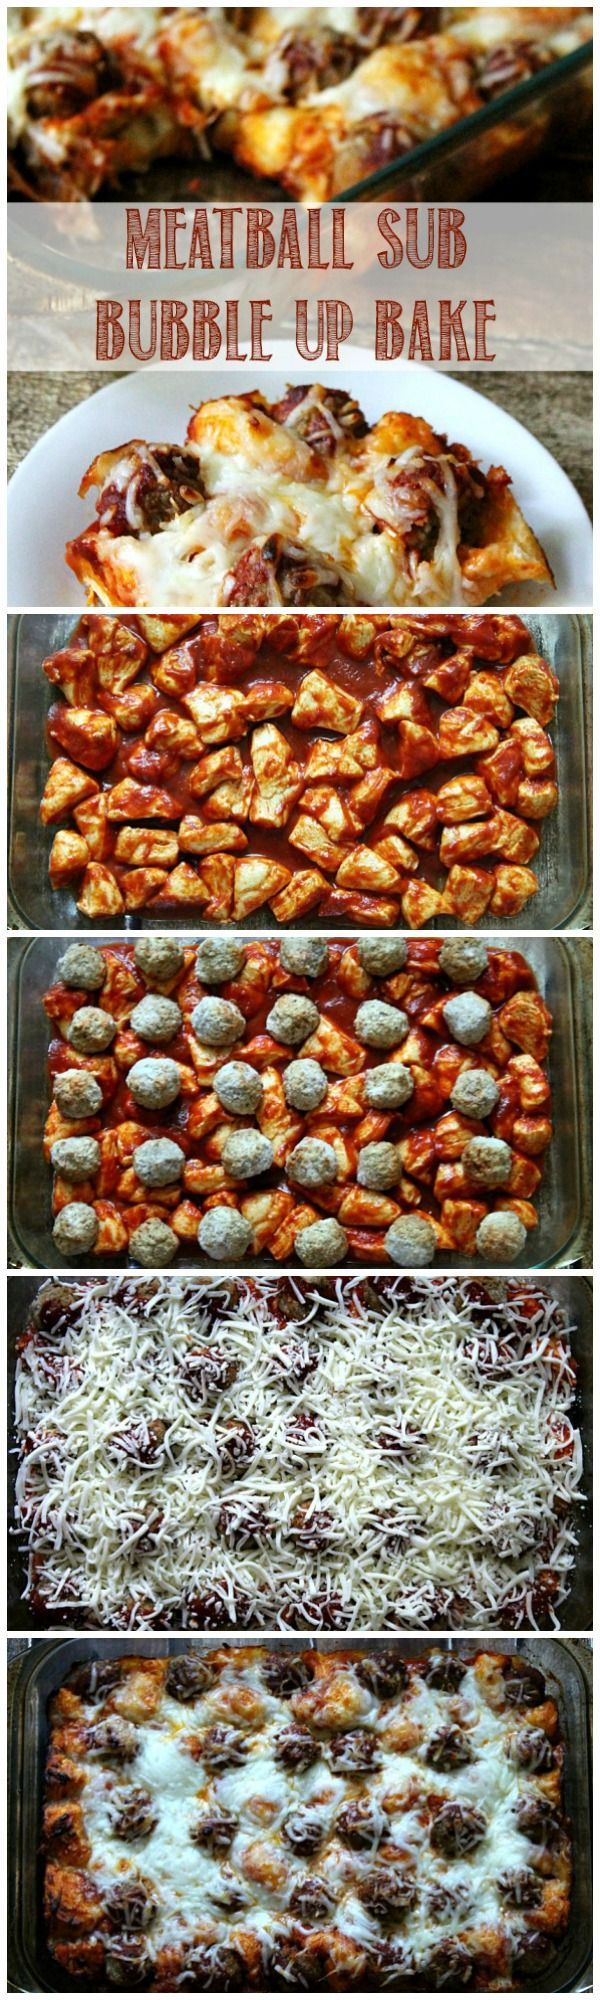 How to Cook Frozen Meatballs in the Oven